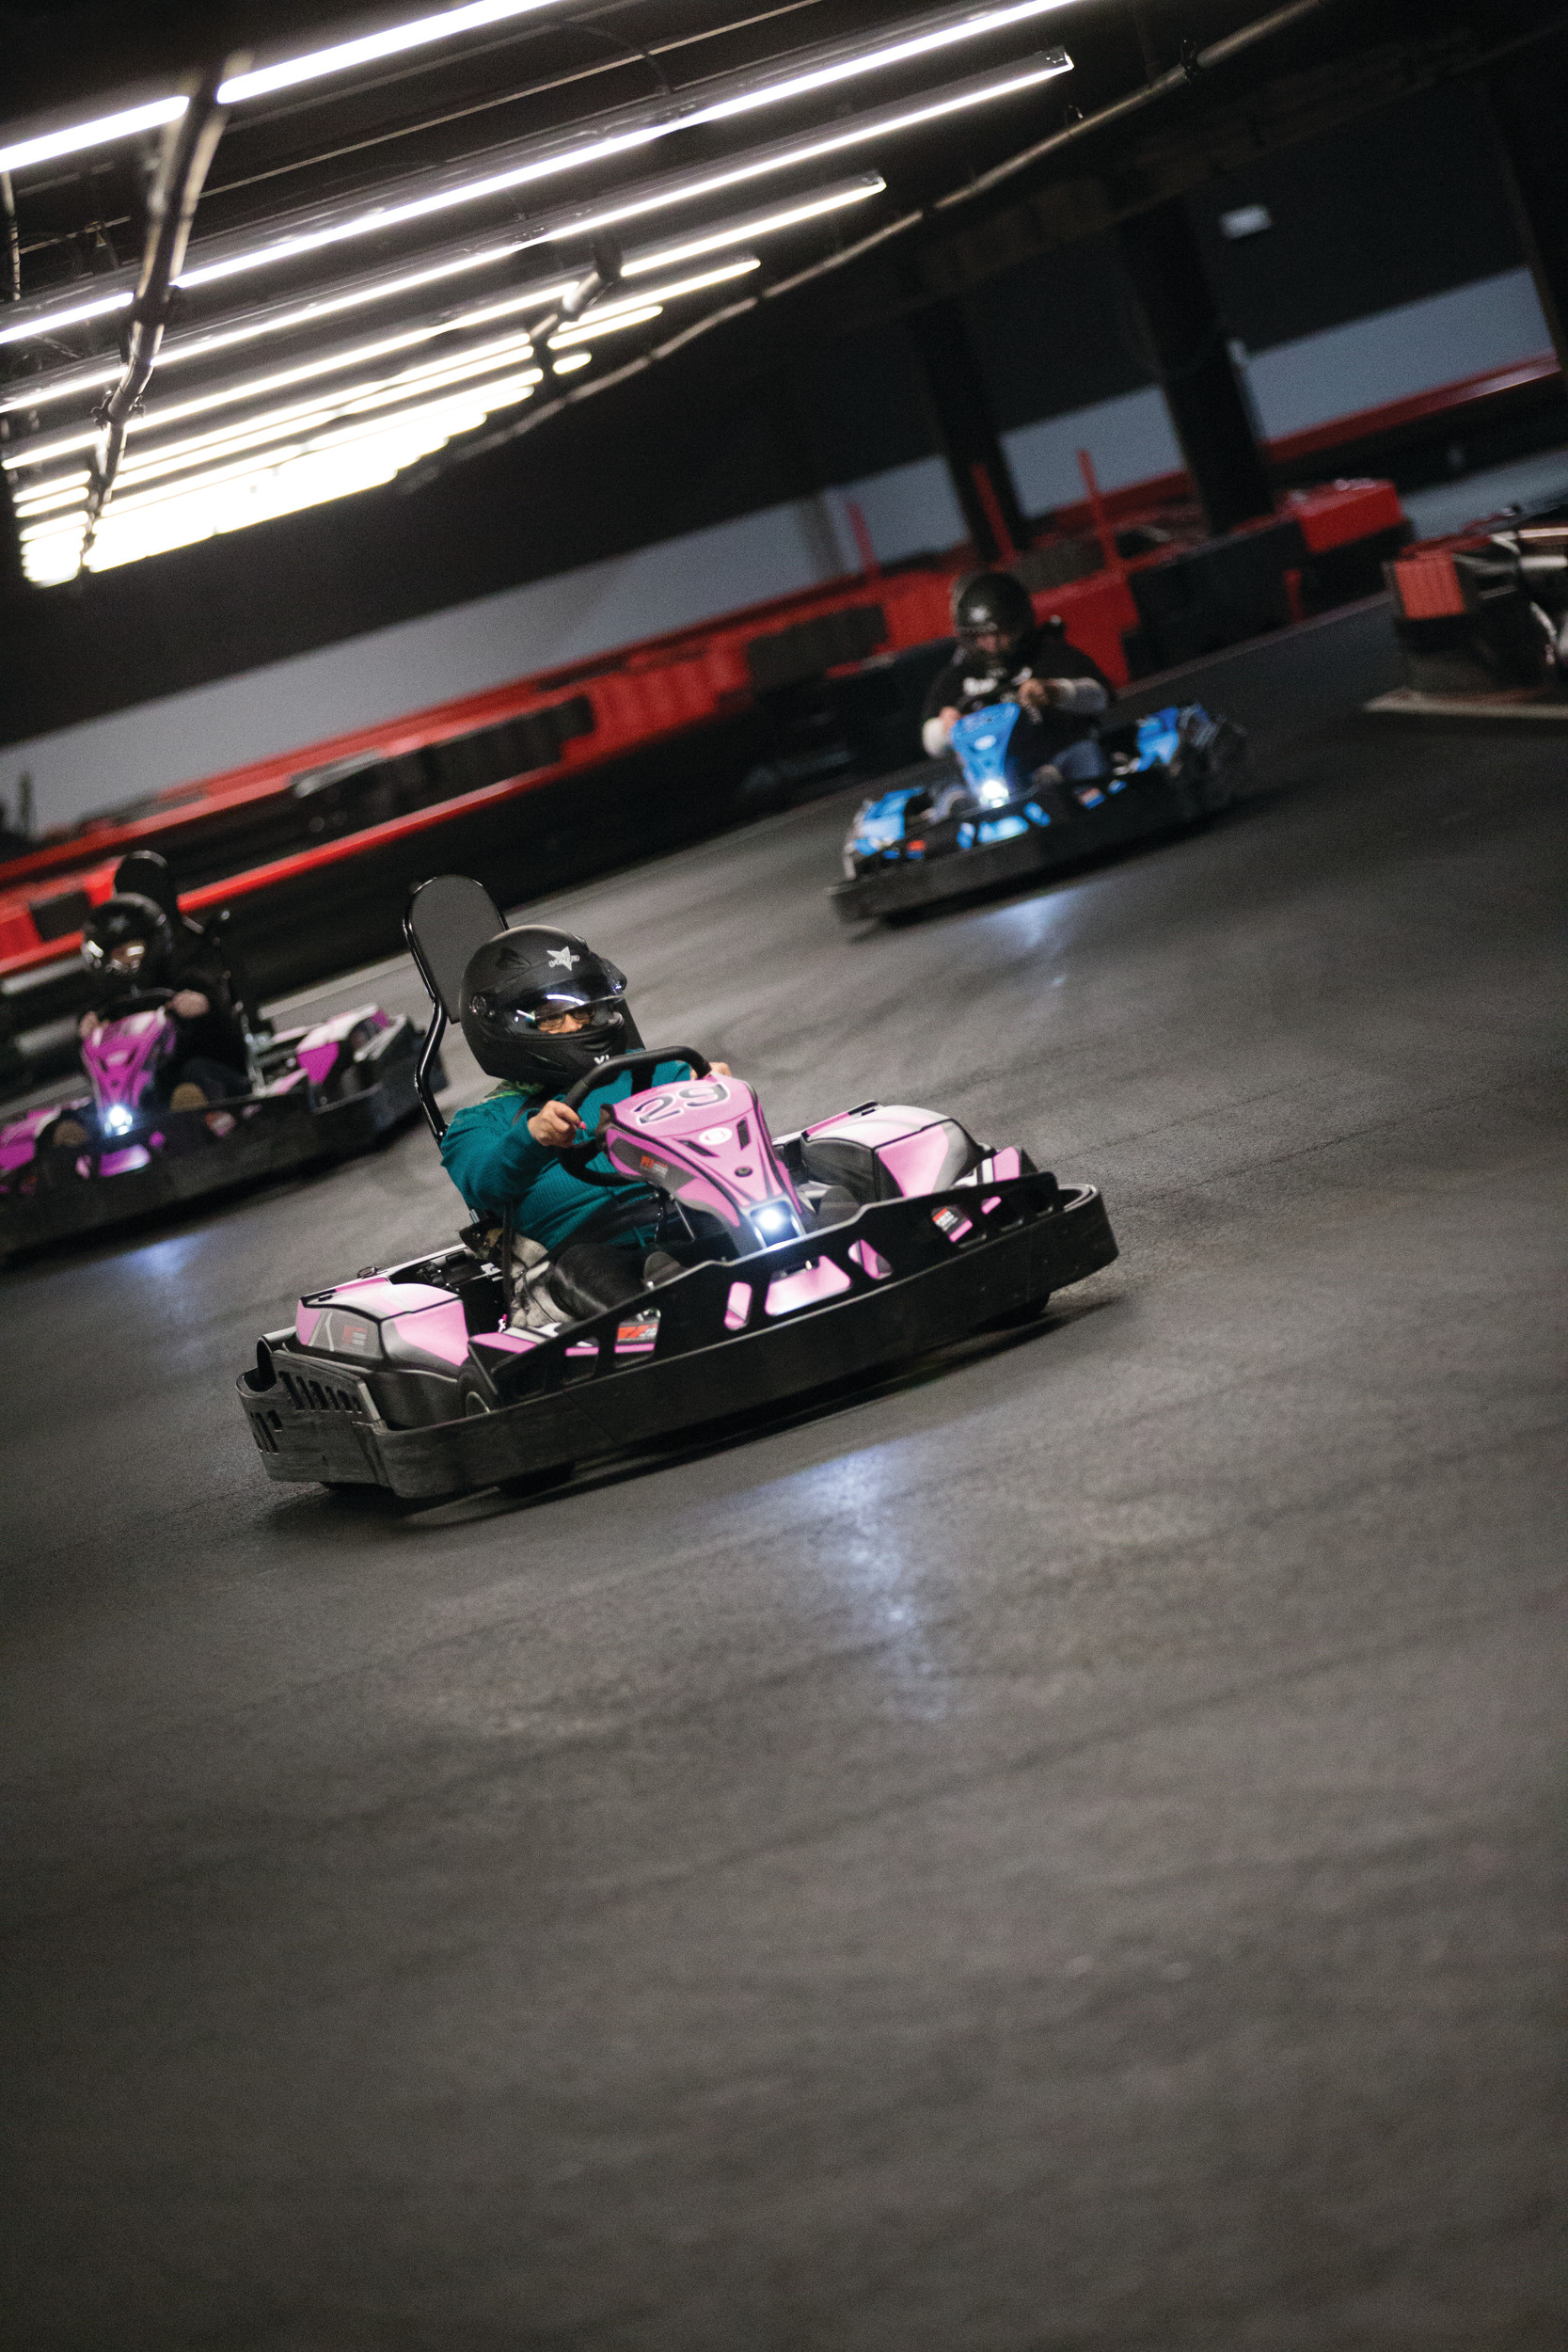 Start your engines and race for glory at R1 Indoor Karting